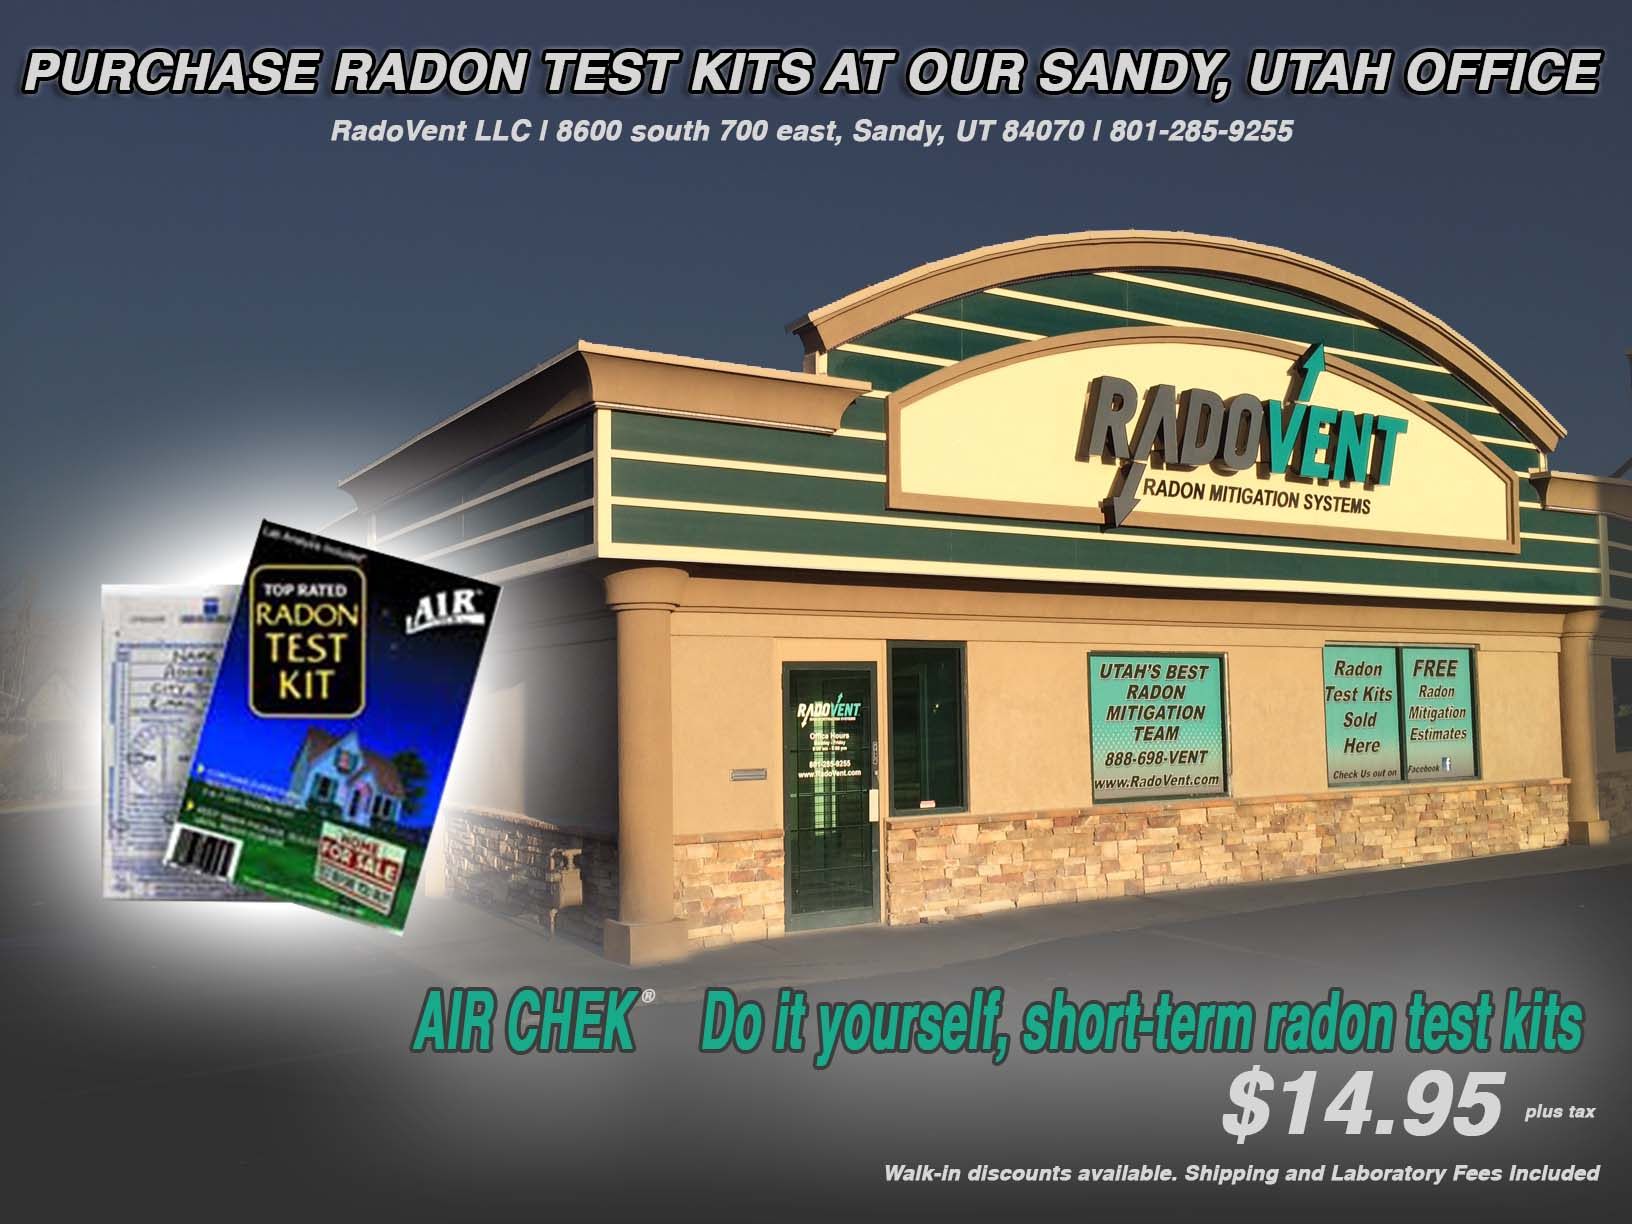 Radovent_radon_test_kits_sold_here.jpg